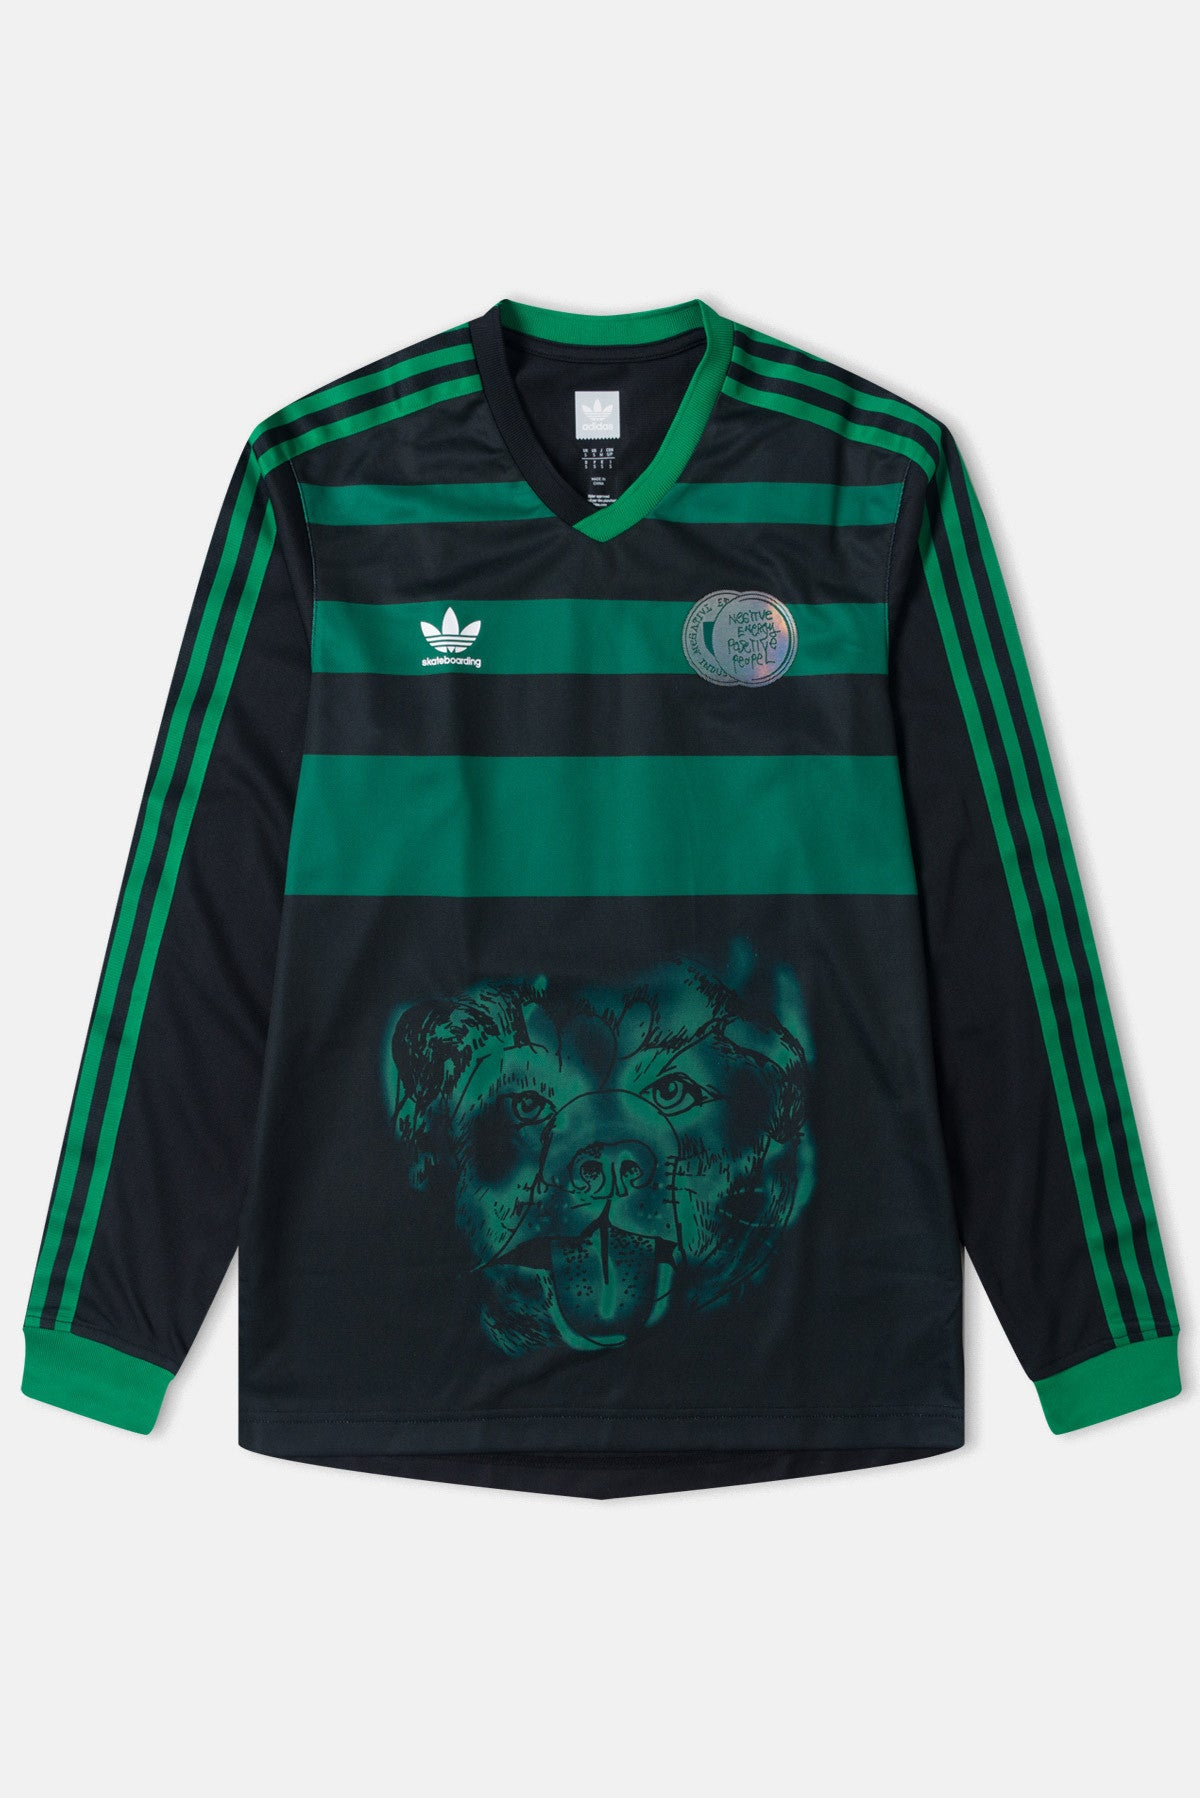 Sur Longue T Manche Priory À Disponible Shirt Tyshawn Adidas wtFF04qxg